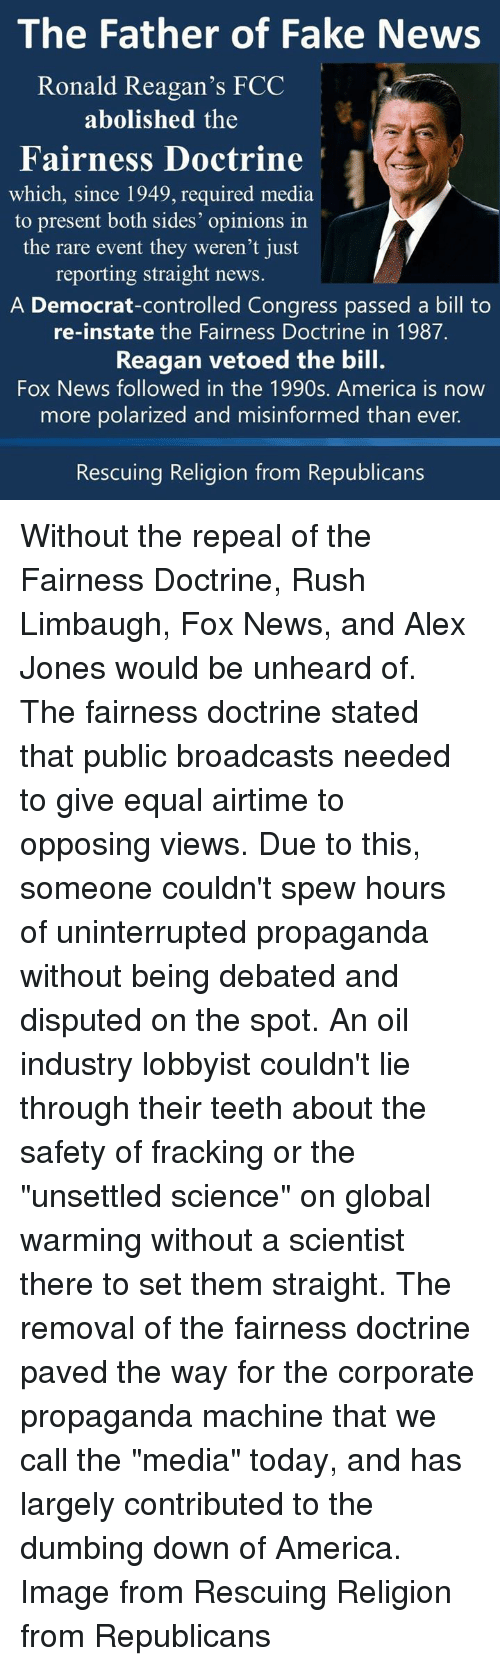 """Global Warming, Memes, and Alex Jones: The Father of Fake News  Ronald Reagan's FCC  abolished the  Fairness Doctrine  which, since 1949, required media  to present both sides' opinions in  the rare event they weren't just  reporting straight news  A Democrat-controlled Congress passed a bill to  re-instate the Fairness Doctrine in 1987.  Reagan vetoed the bill.  Fox News followed in the 1990s. America is now  more polarized and misinformed than ever.  Rescuing Religion from Republicans Without the repeal of the Fairness Doctrine, Rush Limbaugh, Fox News, and Alex Jones would be unheard of.  The fairness doctrine stated that public broadcasts needed to give equal airtime to opposing views.  Due to this, someone couldn't spew hours of uninterrupted propaganda without being debated and disputed on the spot.   An oil industry lobbyist couldn't lie through their teeth about the safety of fracking or the """"unsettled science"""" on global warming without a scientist there to set them straight.  The removal of the fairness doctrine paved the way for the corporate propaganda machine that we call the """"media"""" today, and has largely contributed to the dumbing down of America.   Image from Rescuing Religion from Republicans"""